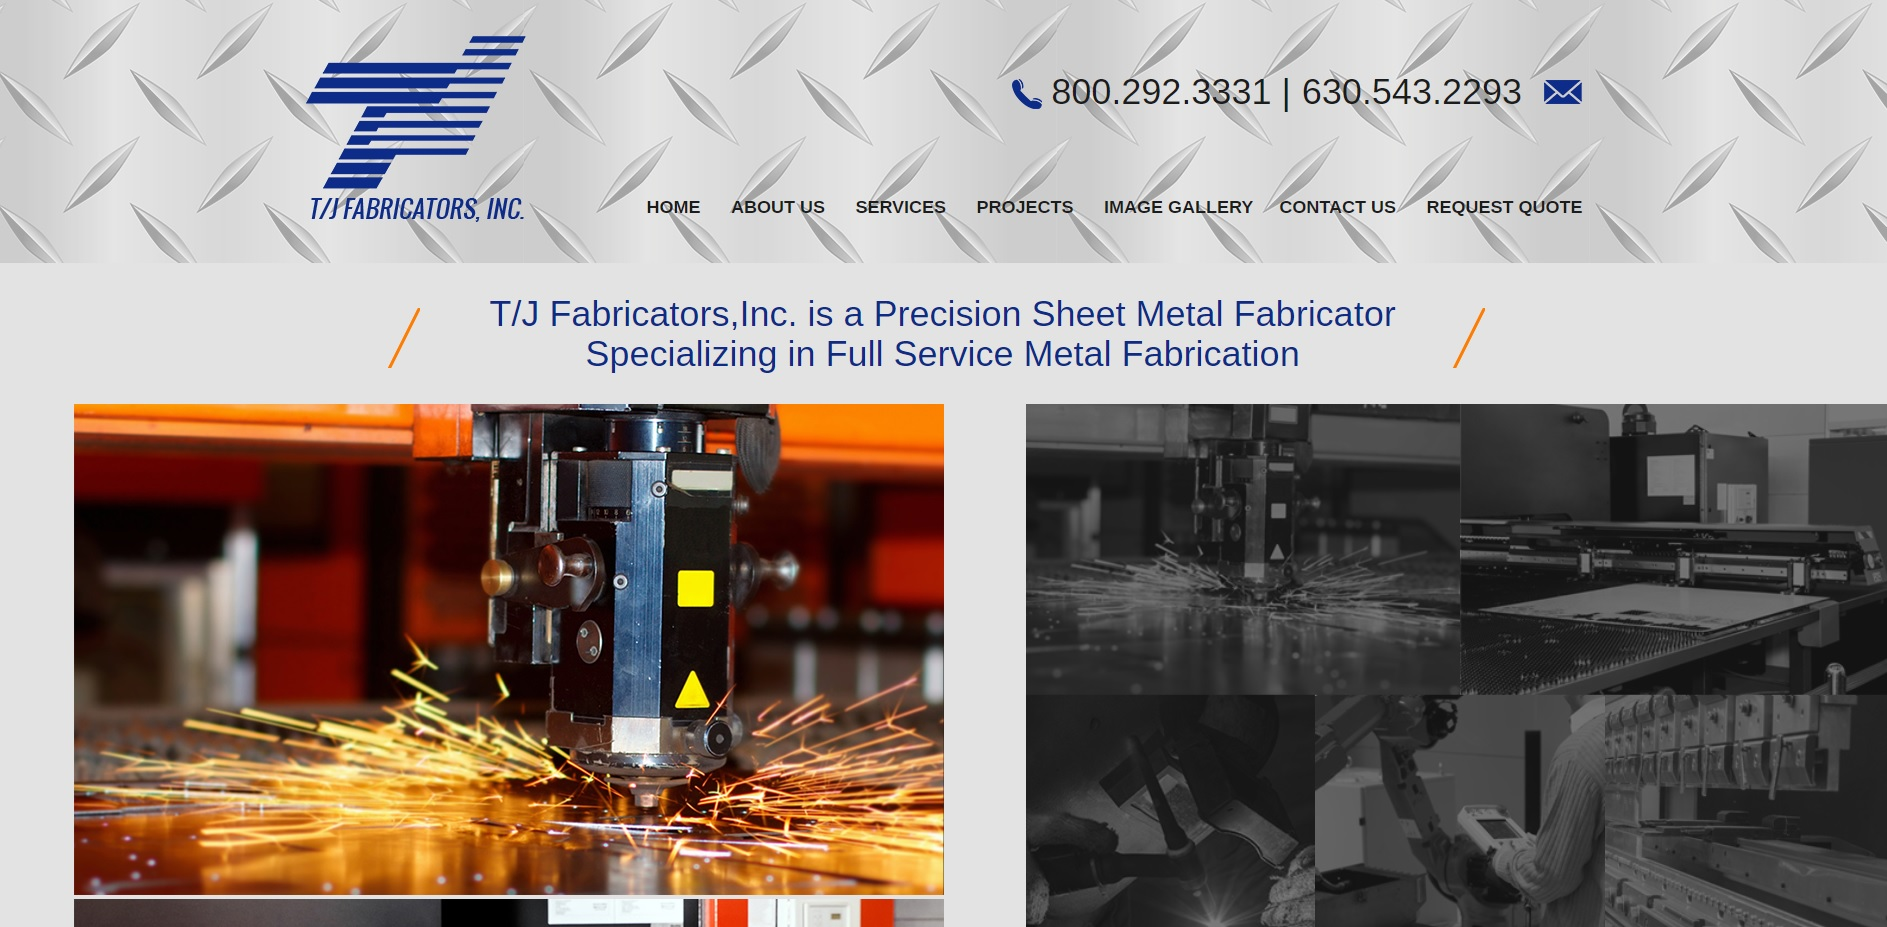 T/J Fabricators, Inc.